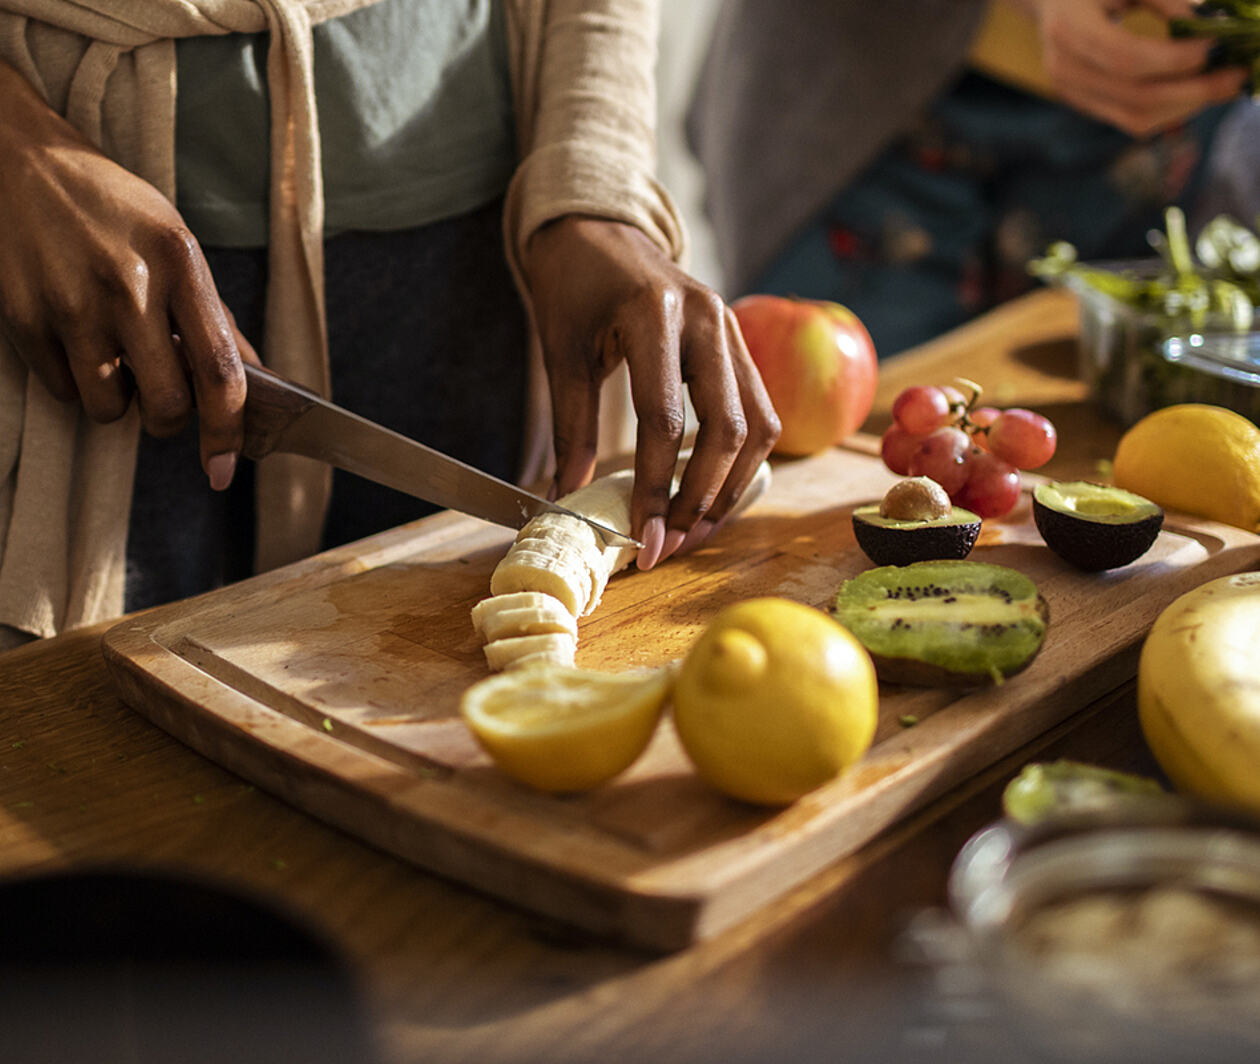 Nutrition: Healthy Cooking, Healthy Living